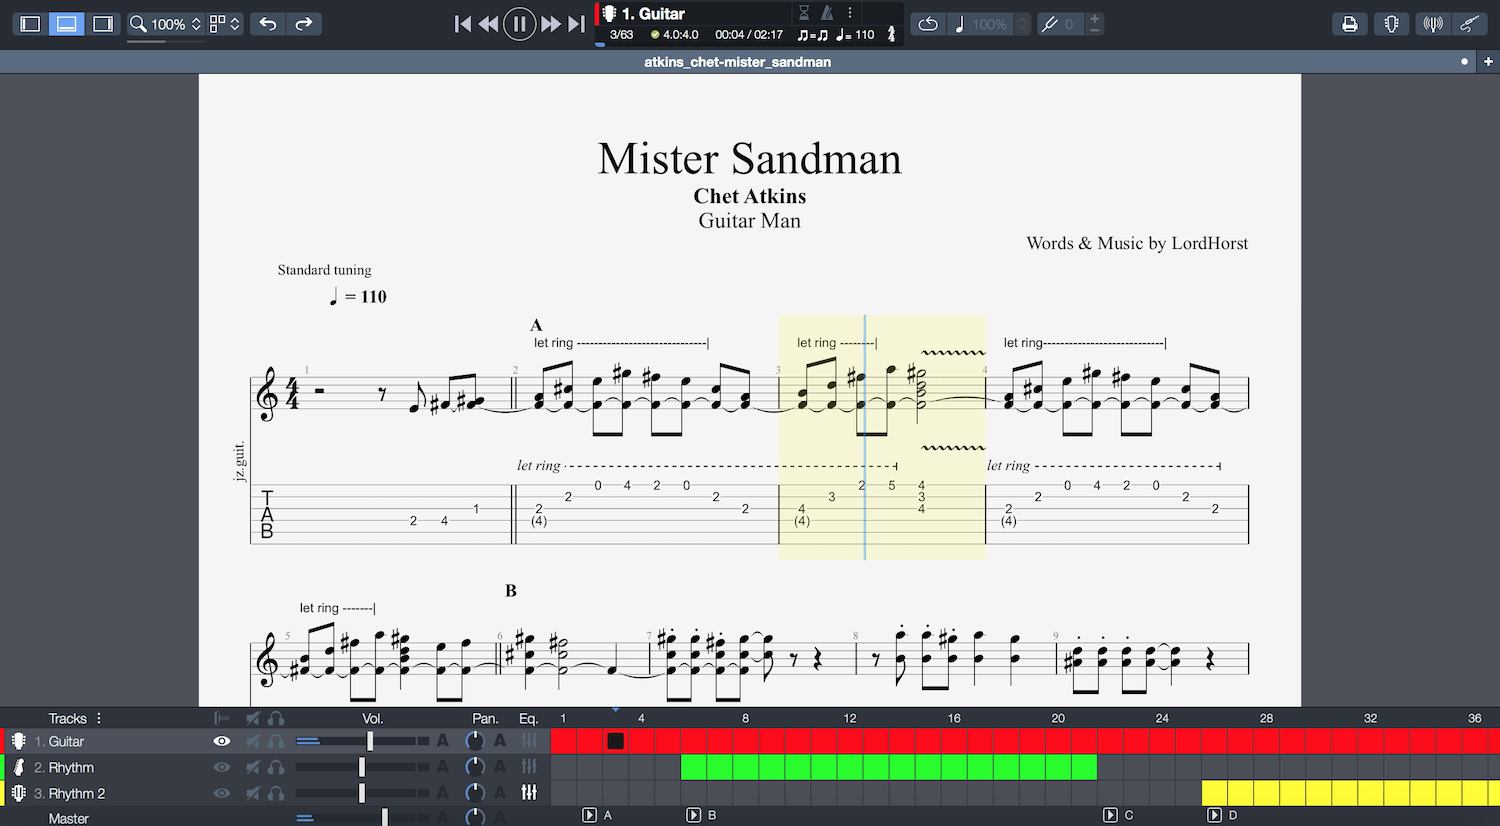 Guitar Pro 7 Review - My Favourite Tool for Learning New